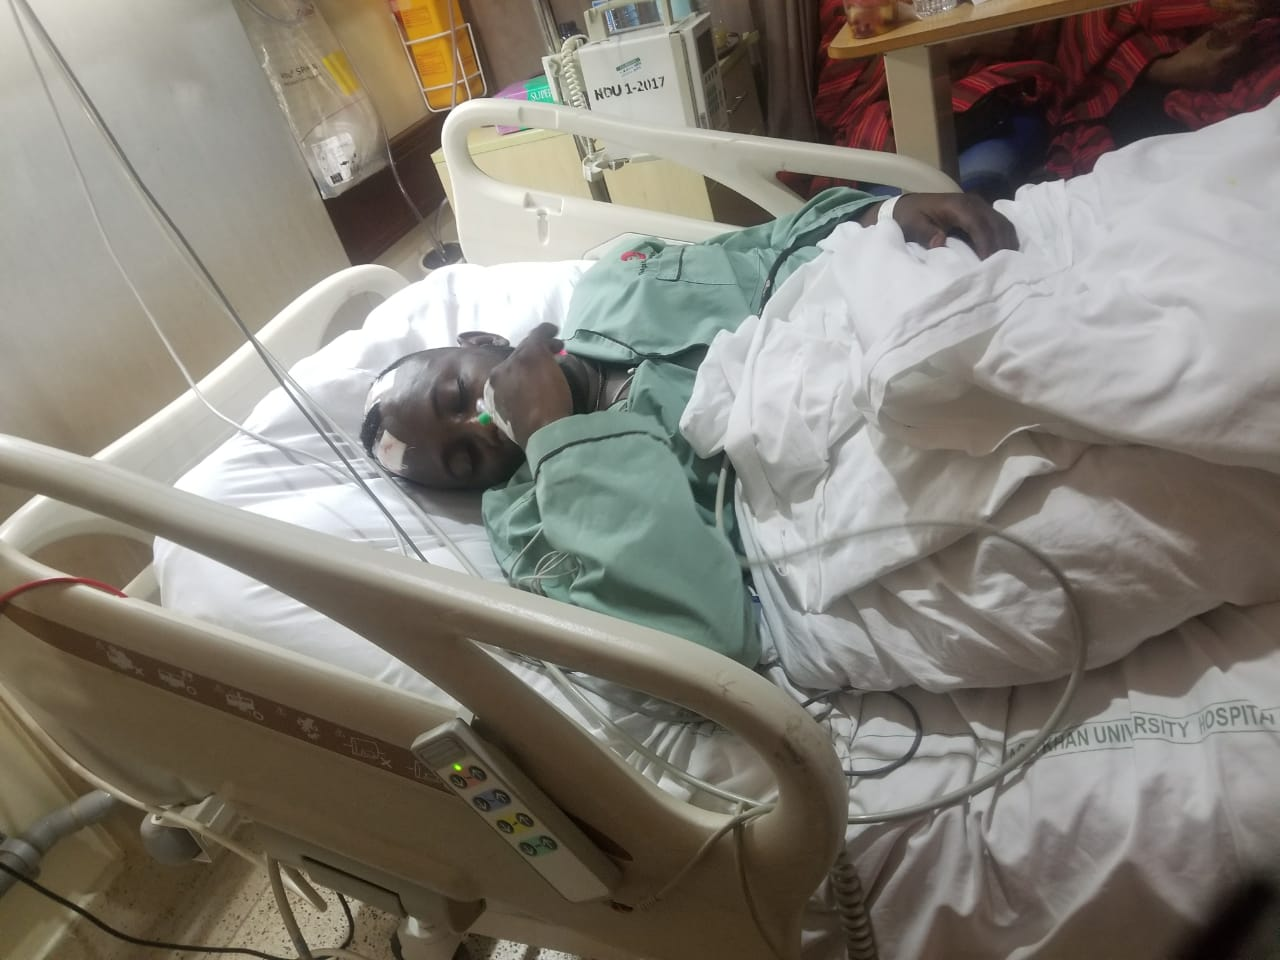 WhatsApp Image 2019 06 04 at 12.59.08 - Lamu Senator in ICU after being attack during date with Saumu Mbuvi